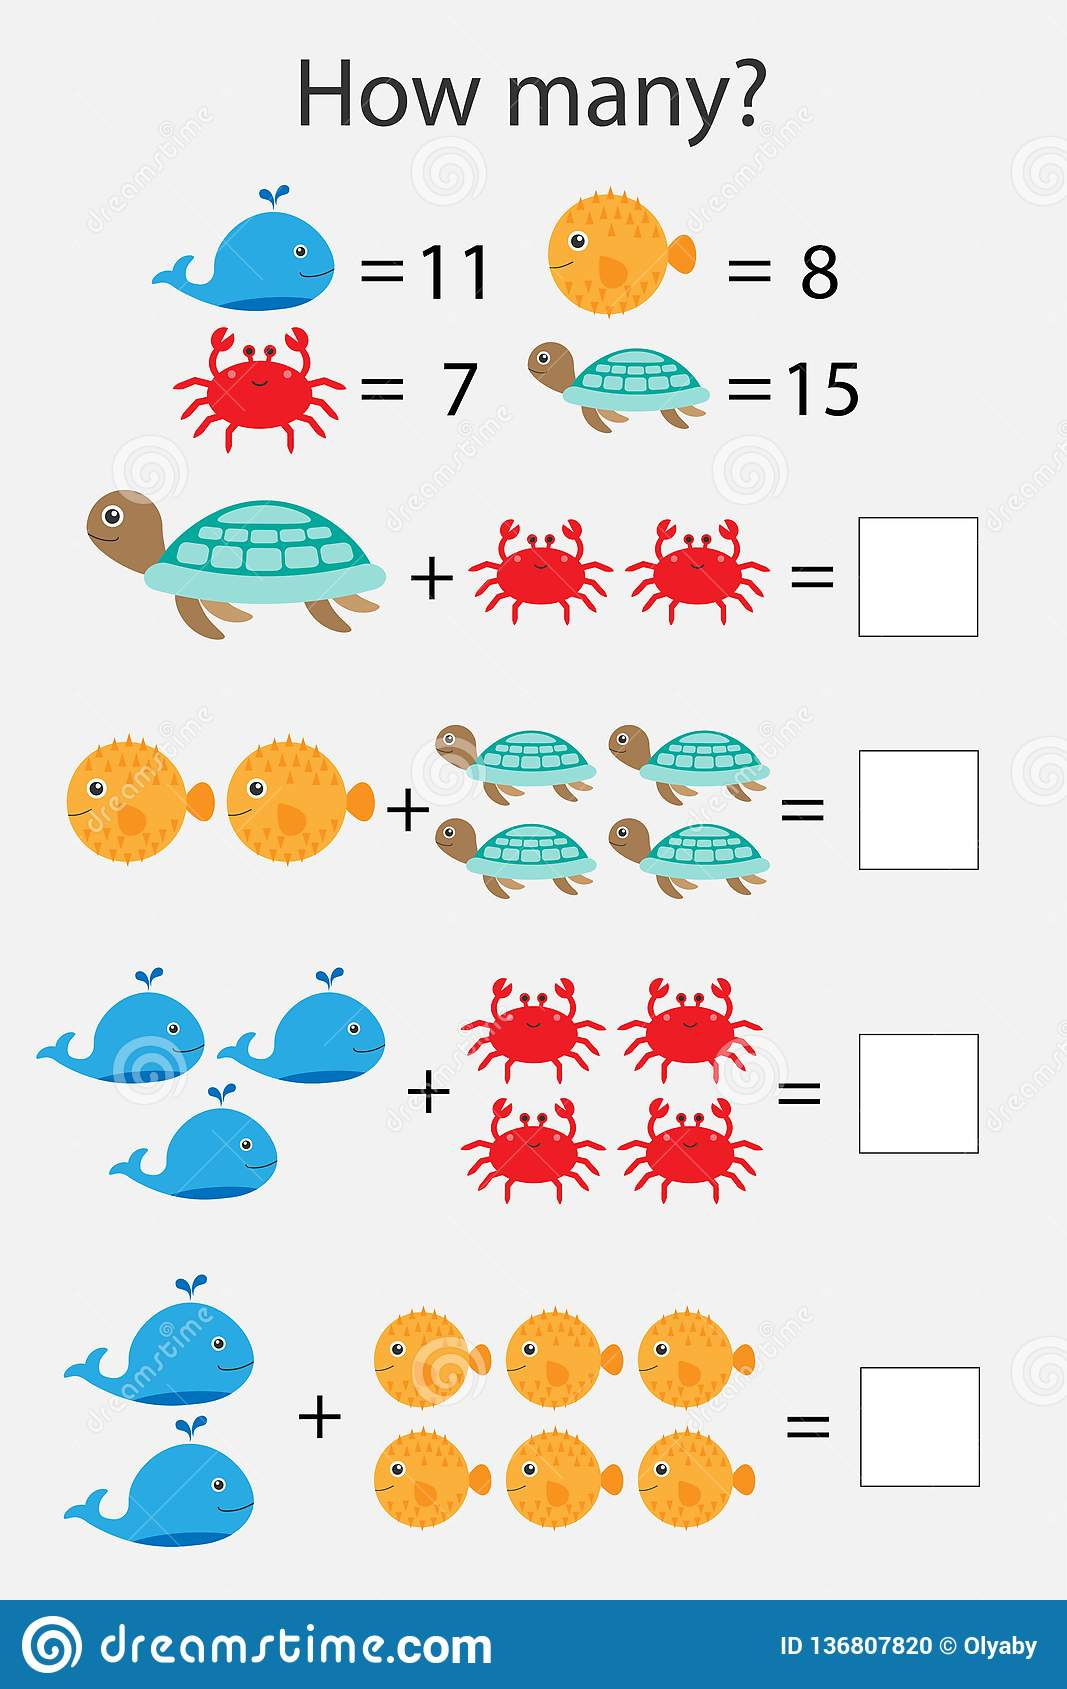 How Many Counting Game With Ocean Animals For Kids Educational Maths Task For The Development